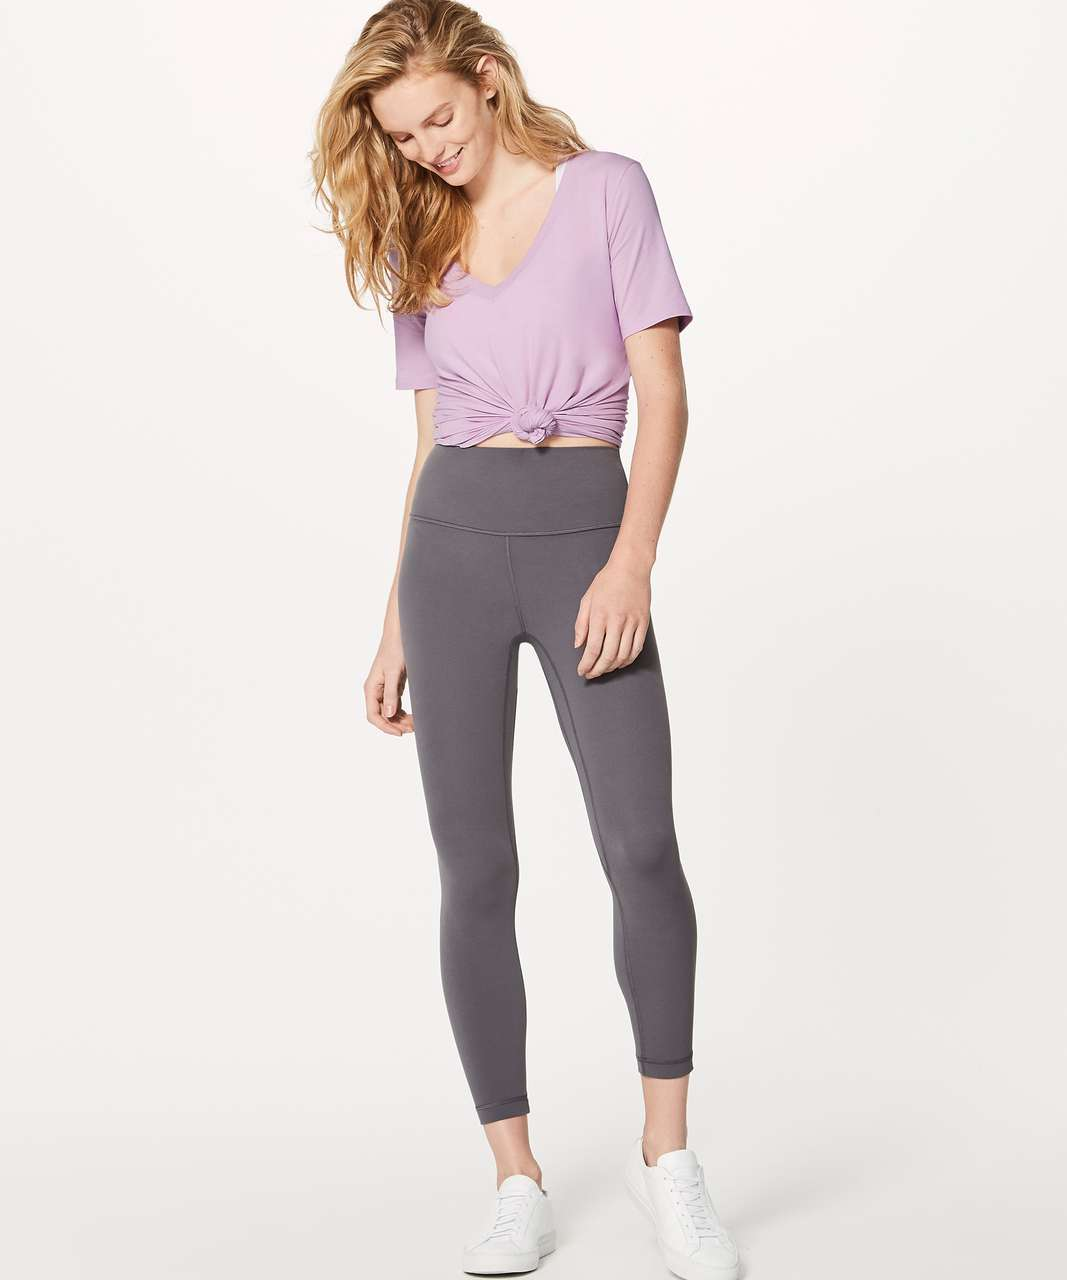 Lululemon Love Tee IV - Rose Quartz